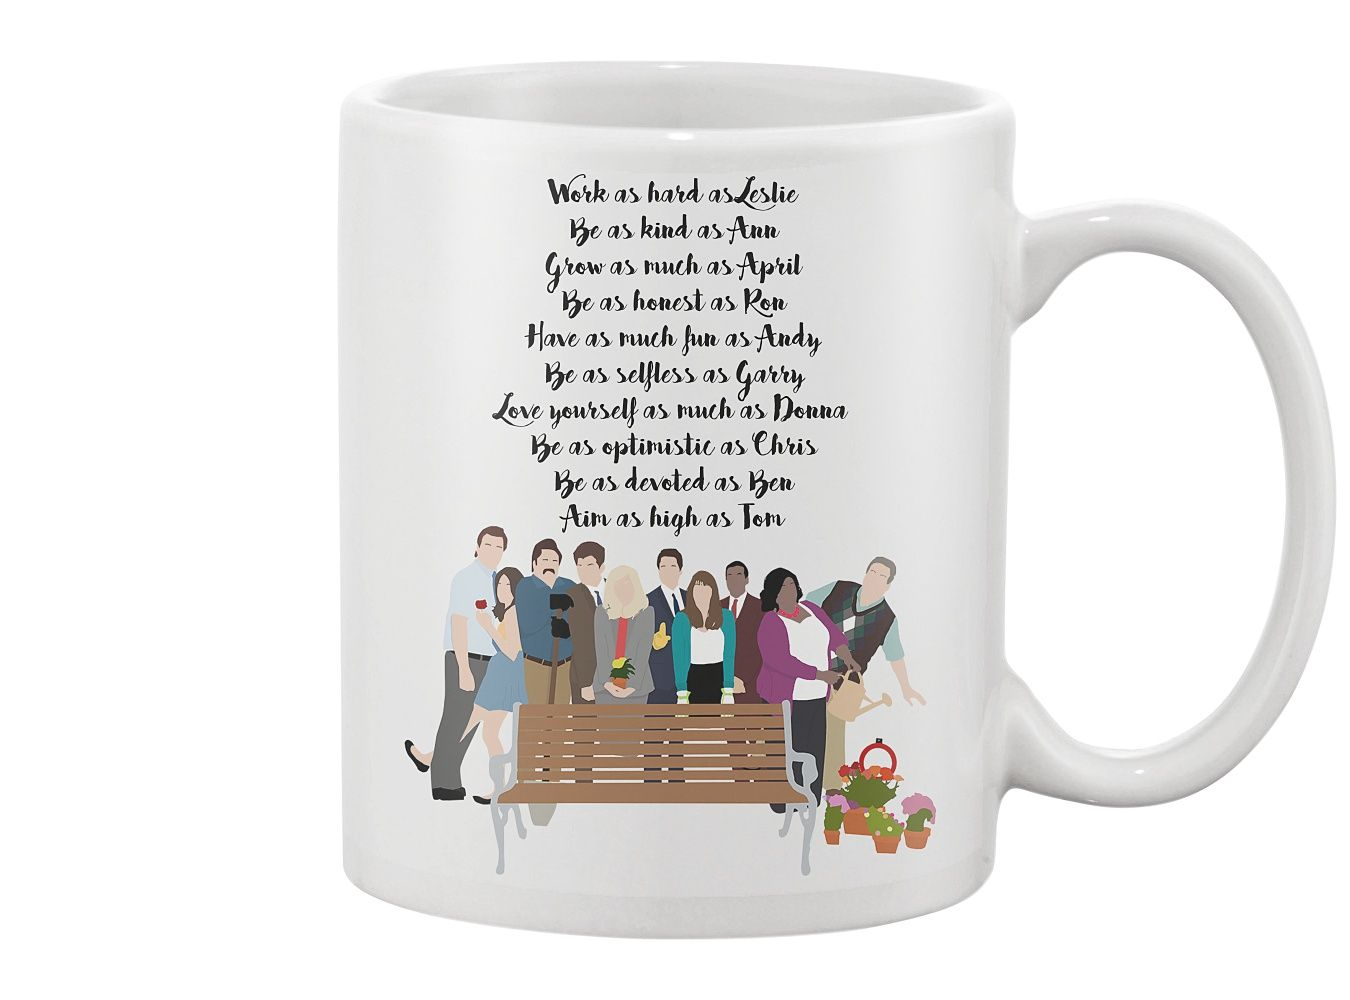 "Parks and Recreation Mug ""Work as Hard as Leslie, Be as Kind as Ann, Grow as Much as April, Be as Honest as Ron, Have as Much Fun as Andy, Be as Selfless as Garry, Love yourself as much as Donna, Be as optimistic as Chris, Be as devoted as Ben, Aim as High as Tom"""